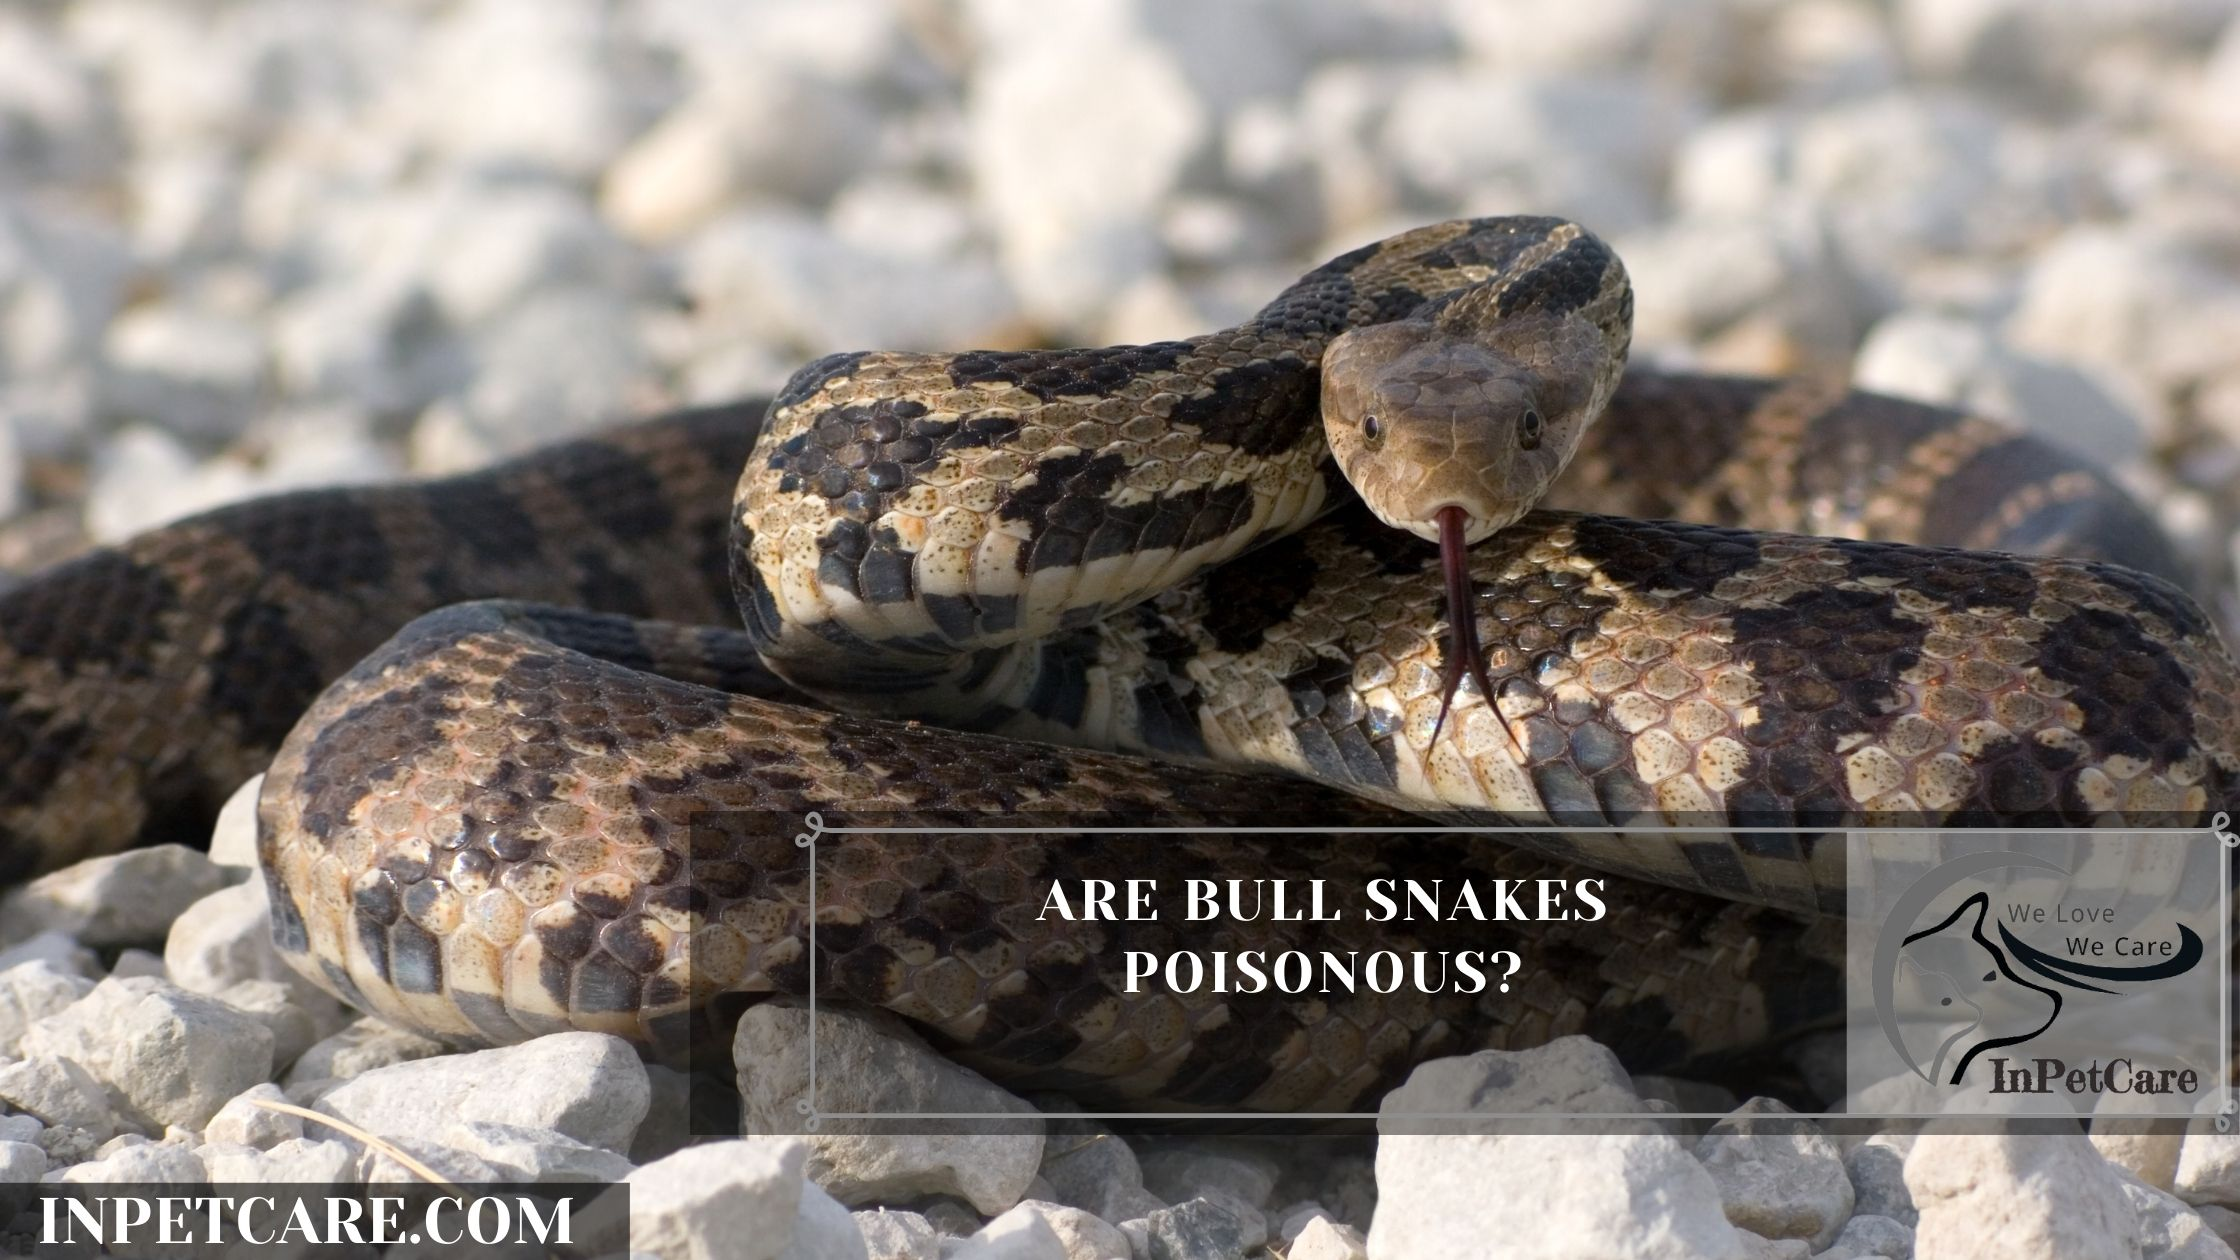 Are Bull Snakes Poisonous?